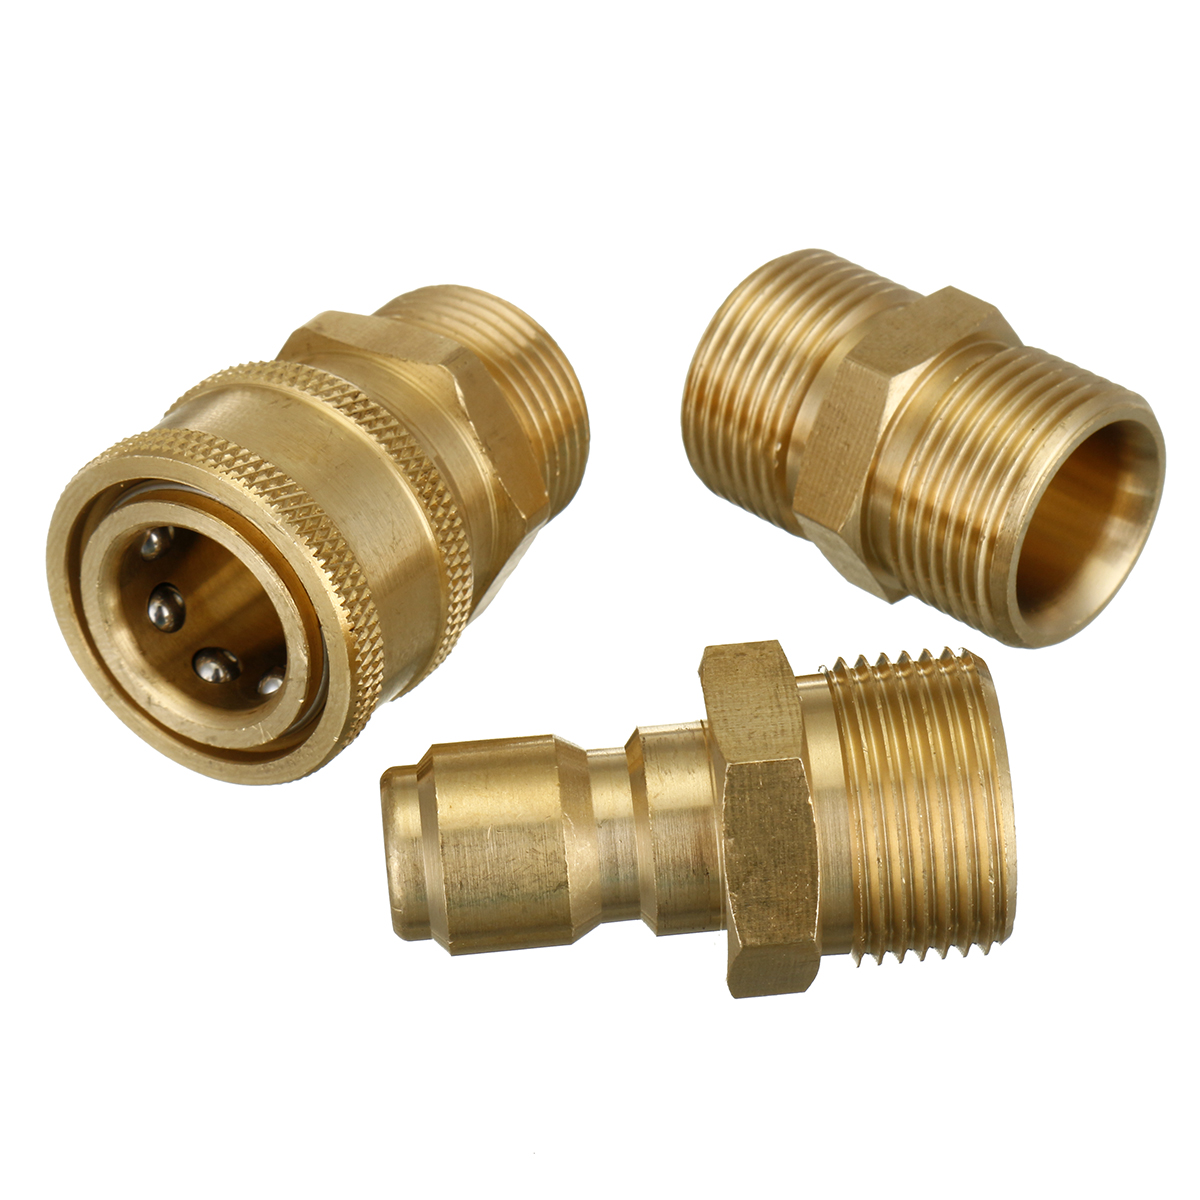 Electric Pressure Washer Fitting Connector Quick Release Hose Coupler M22